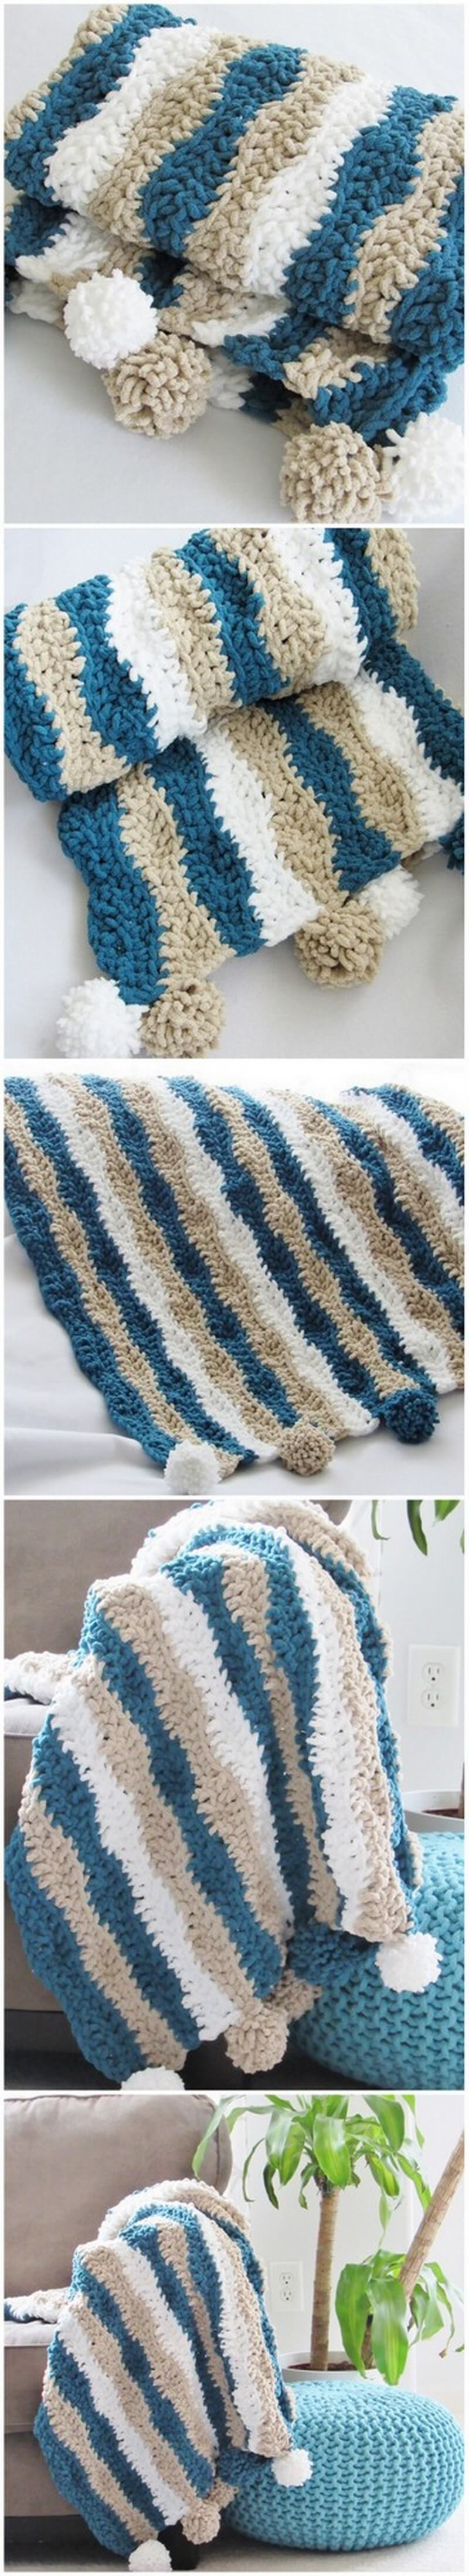 Easy Crochet Blanket Pattern (19)